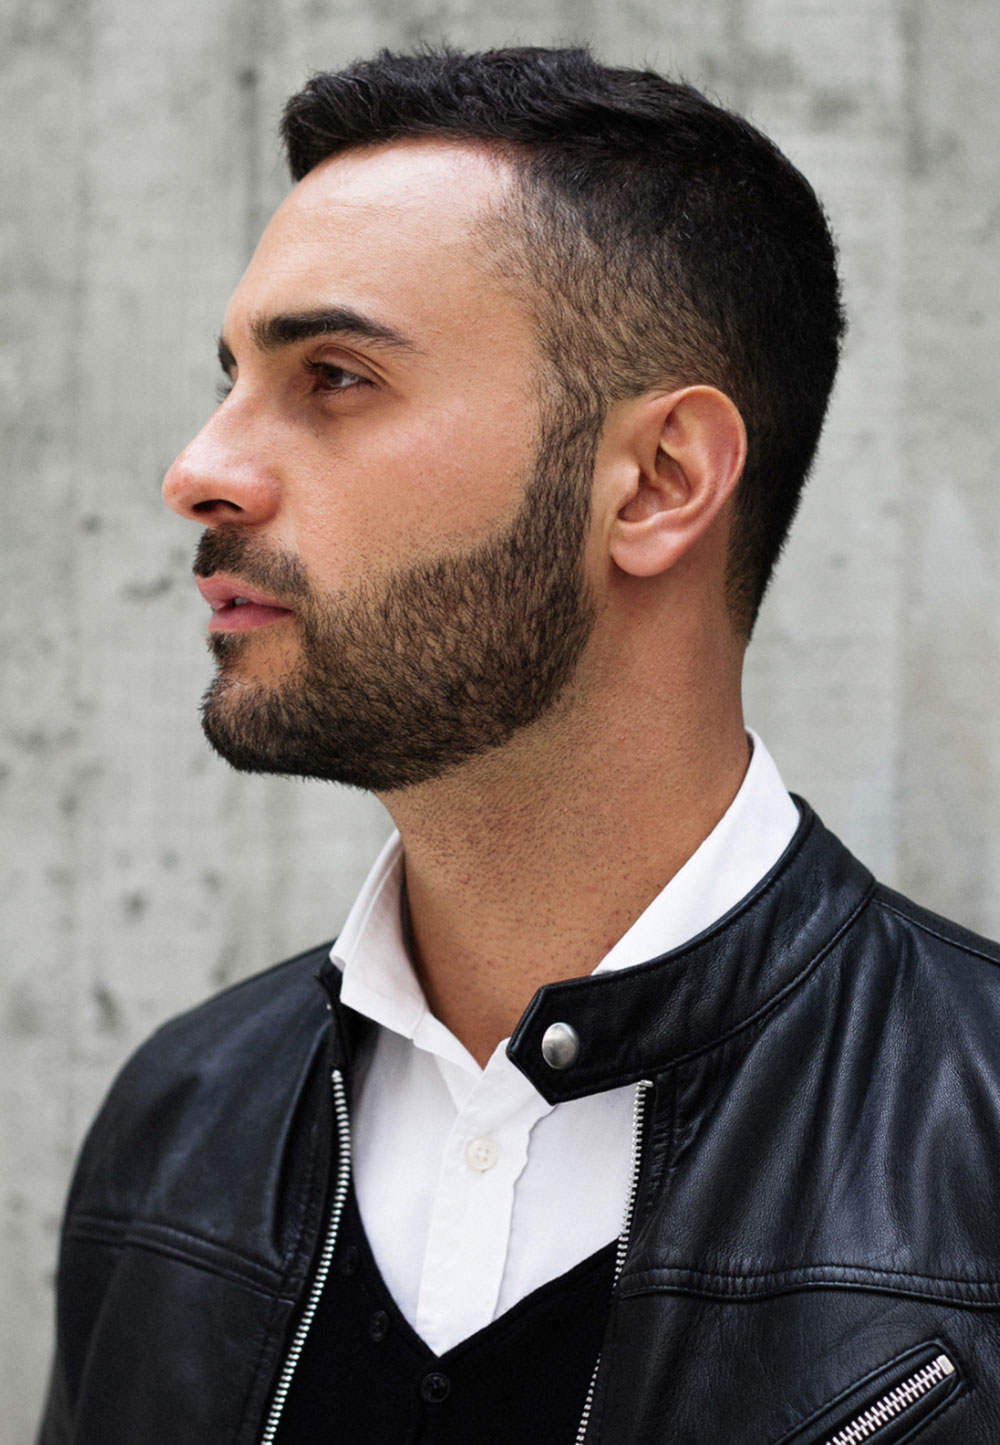 Men's hair by Morphic